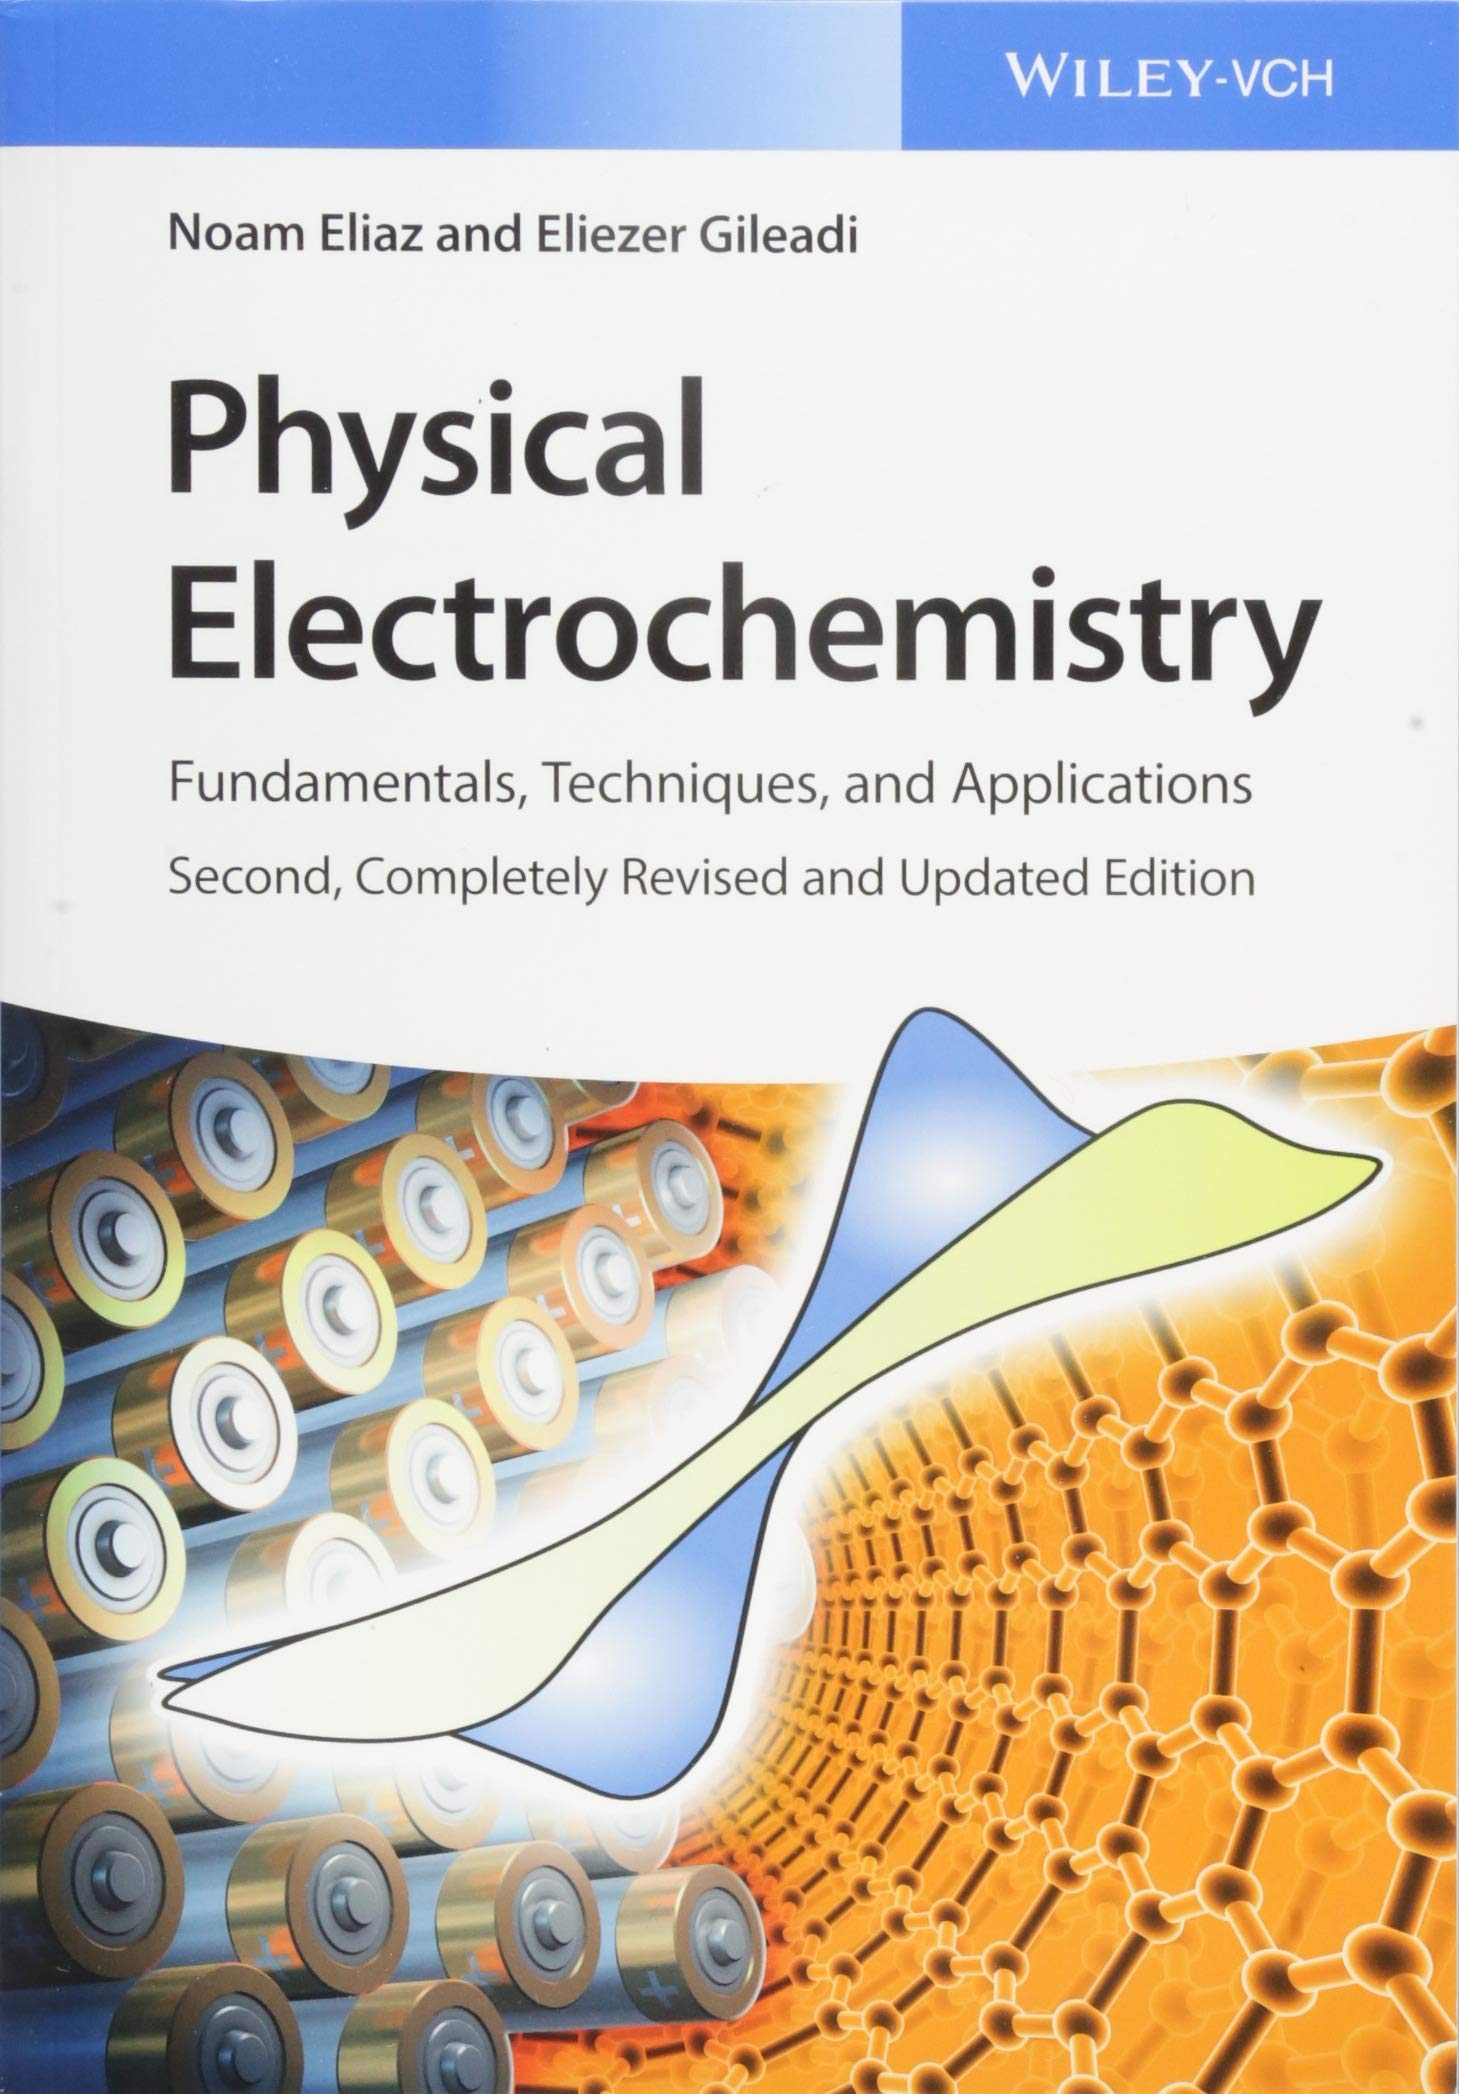 Physical Electrochemistry: Fundamentals, Techniques, and Applications